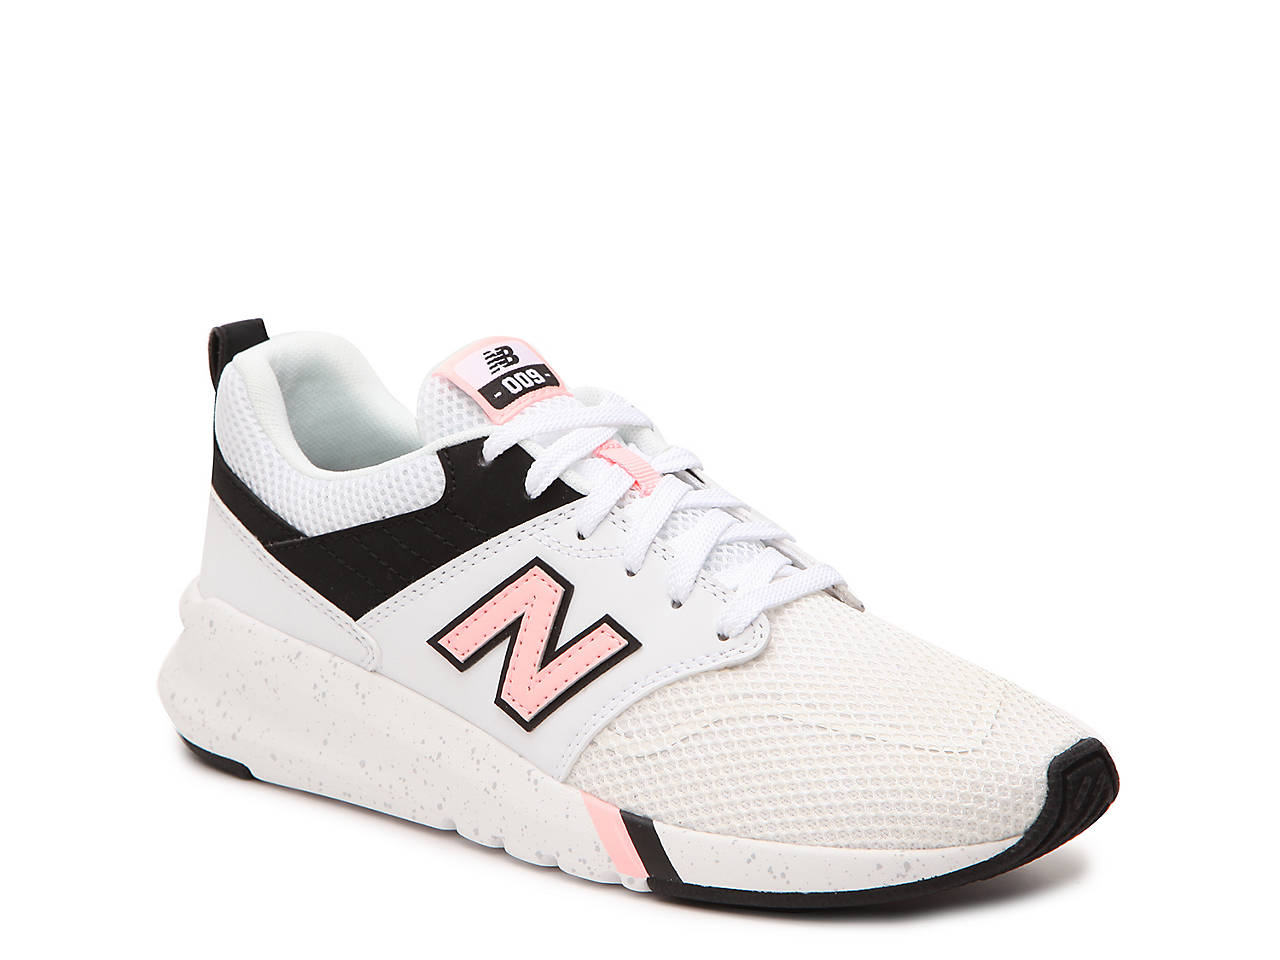 New Balance Wr996 Classic Wide Womens Trainers in Blush Pink